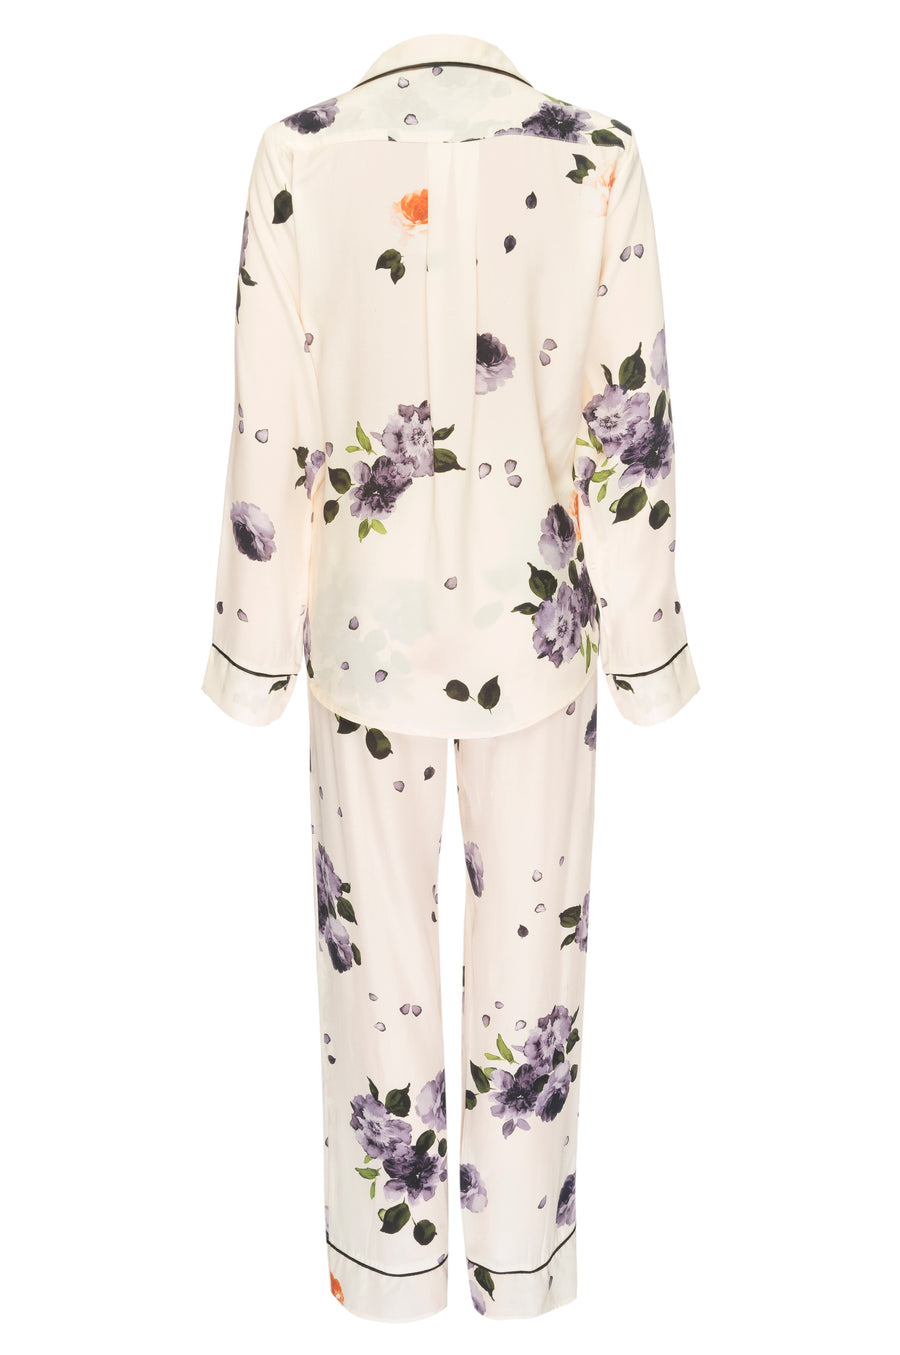 Silk Charmeuse Long Sleeved PJ Top + Pant Set: Garden Floral Print